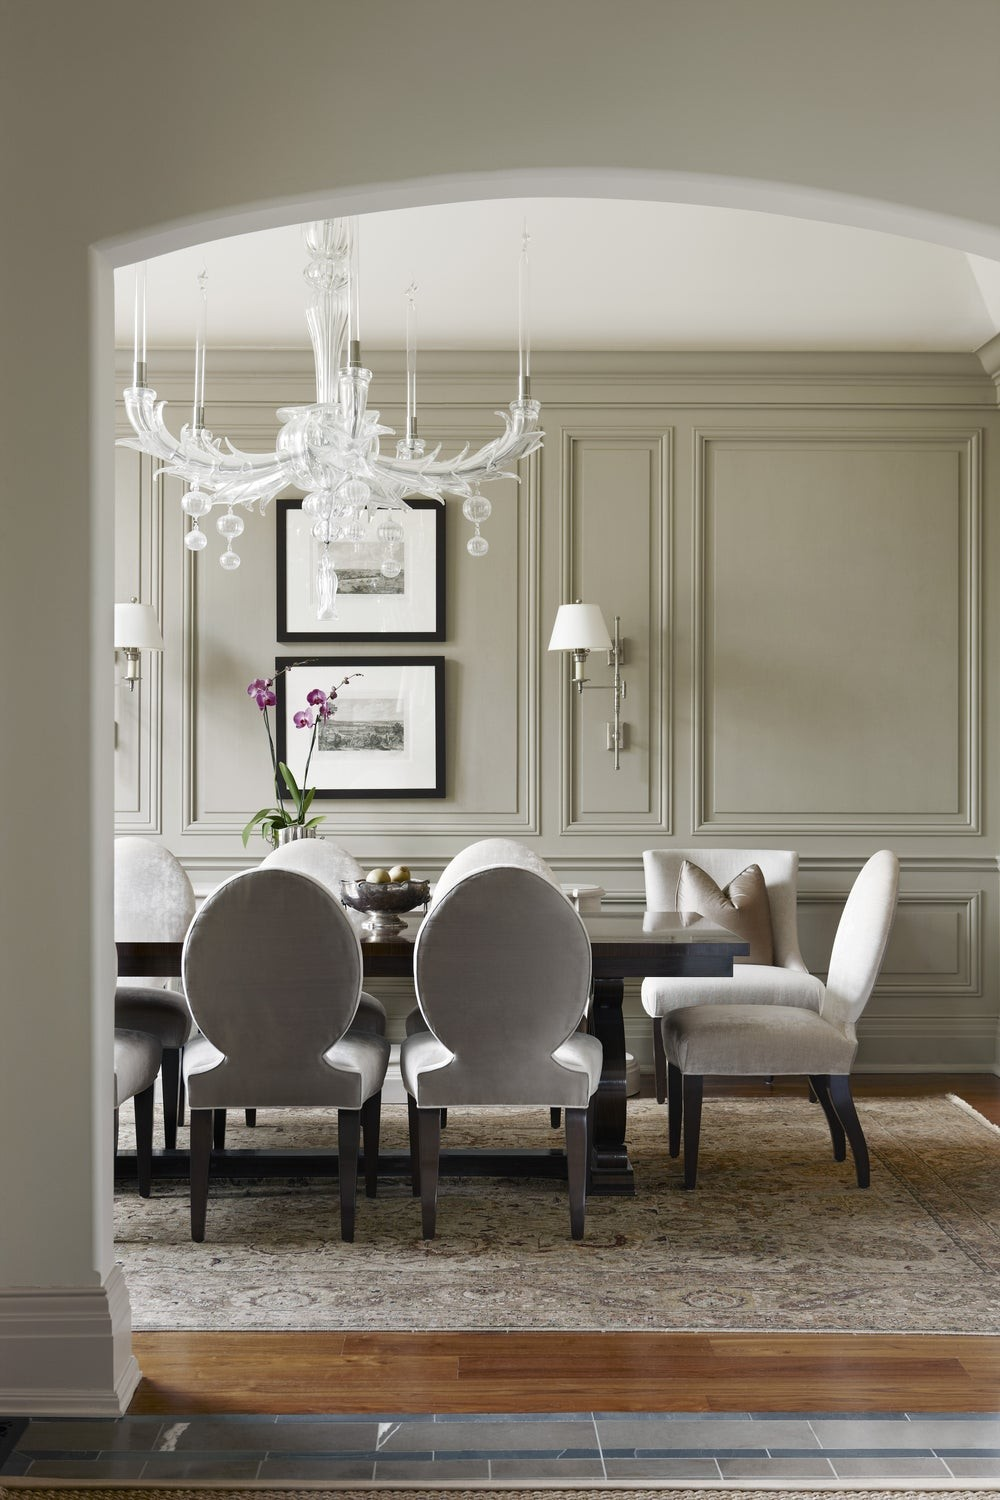 An Unparalleled Devotion to Detail: Dining Rooms by Julie Charbonneau julie charbonneau An Unparalleled Devotion to Detail: Dining Rooms by Julie Charbonneau 1 1stdibs